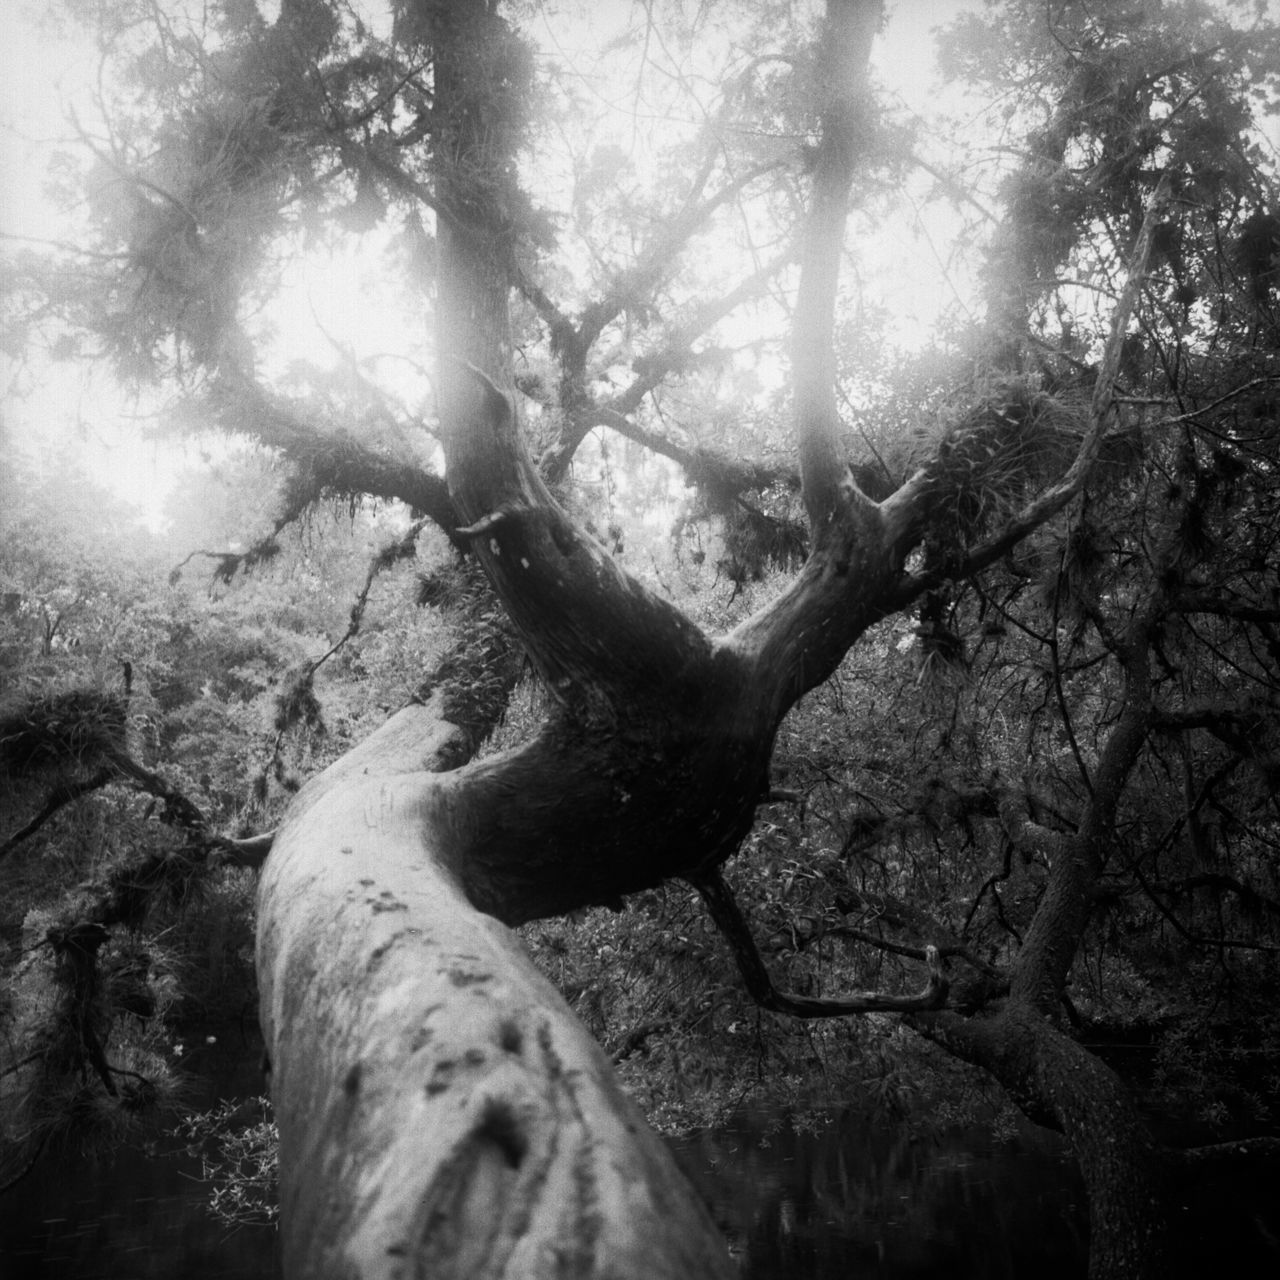 Analog Analogue Photography Beauty In Nature Black And White Branch Day Film Photography Forest Light And Shadow Light And Shadows Nature No People Outdoors Scenics Sky Spooky Swamp Tranquility Tree Tree Trunk